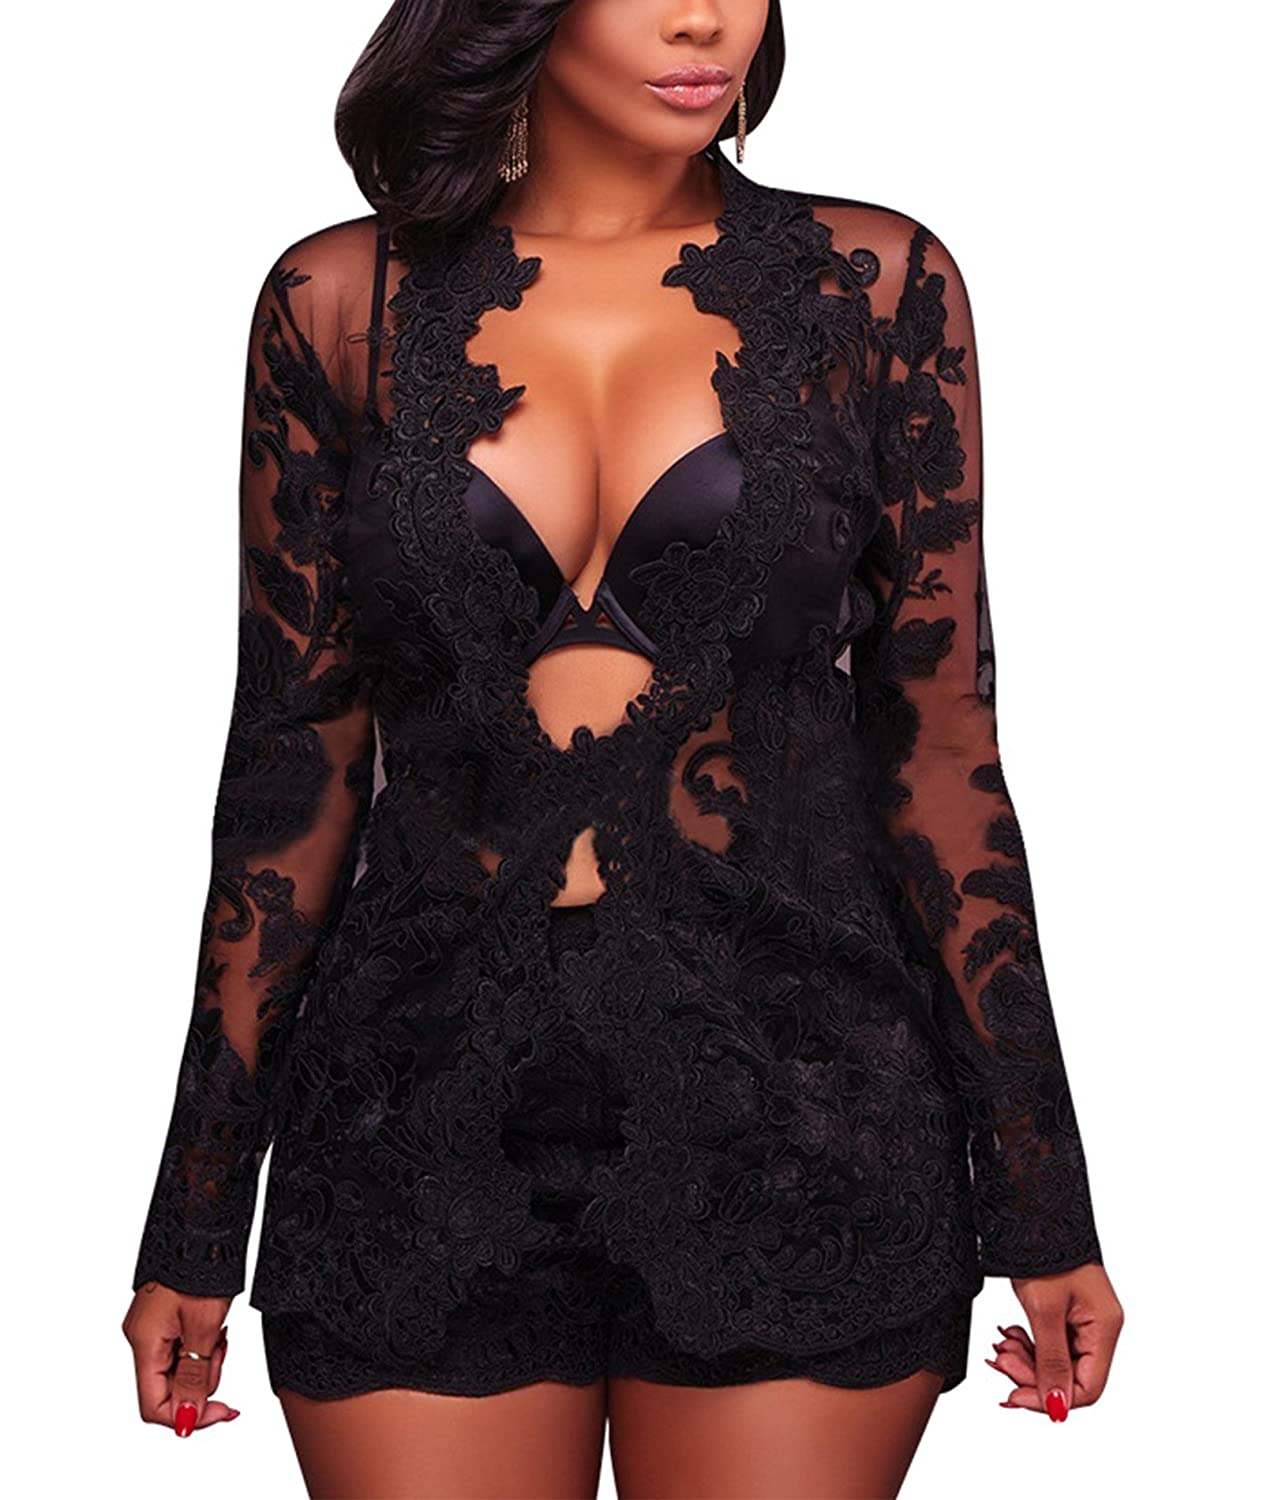 829762a55f0 Top 10 wholesale Black Lace Long Sleeve Romper - Chinabrands.com